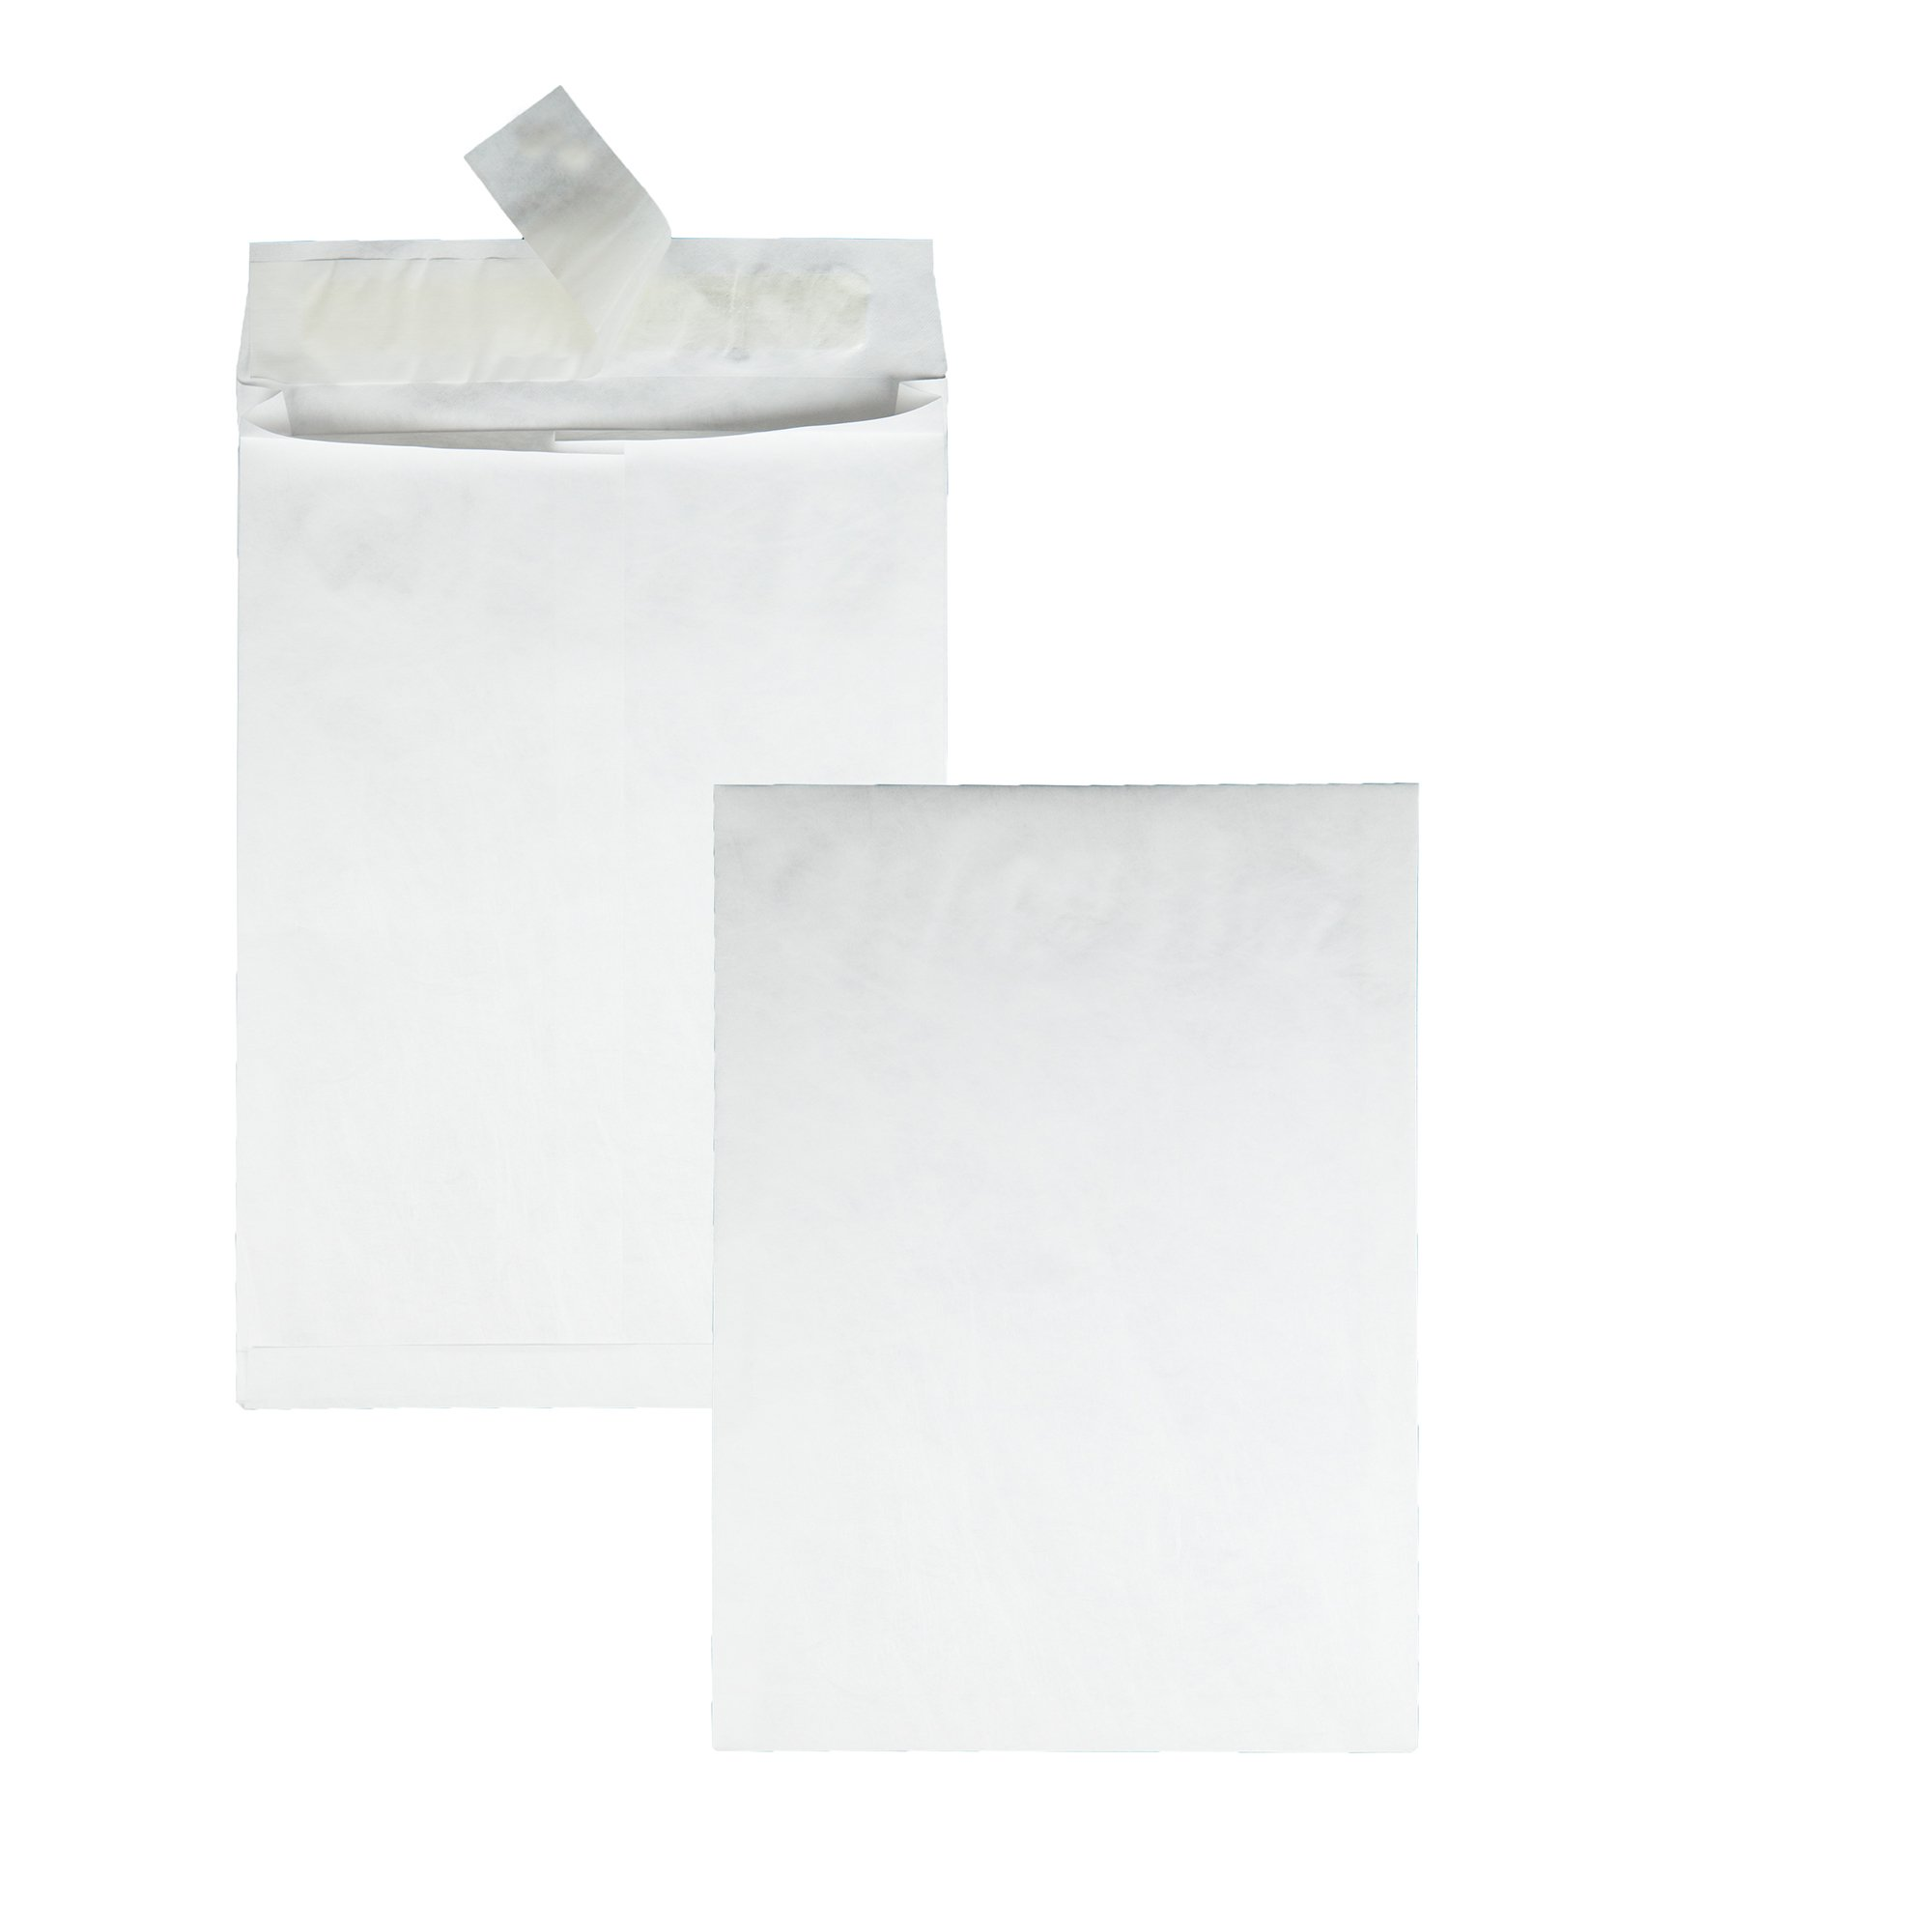 Survivor R4200 Tyvek Expansion Mailer, 10 x 13 x 1 1/2, White, 18lb (Case of 100)